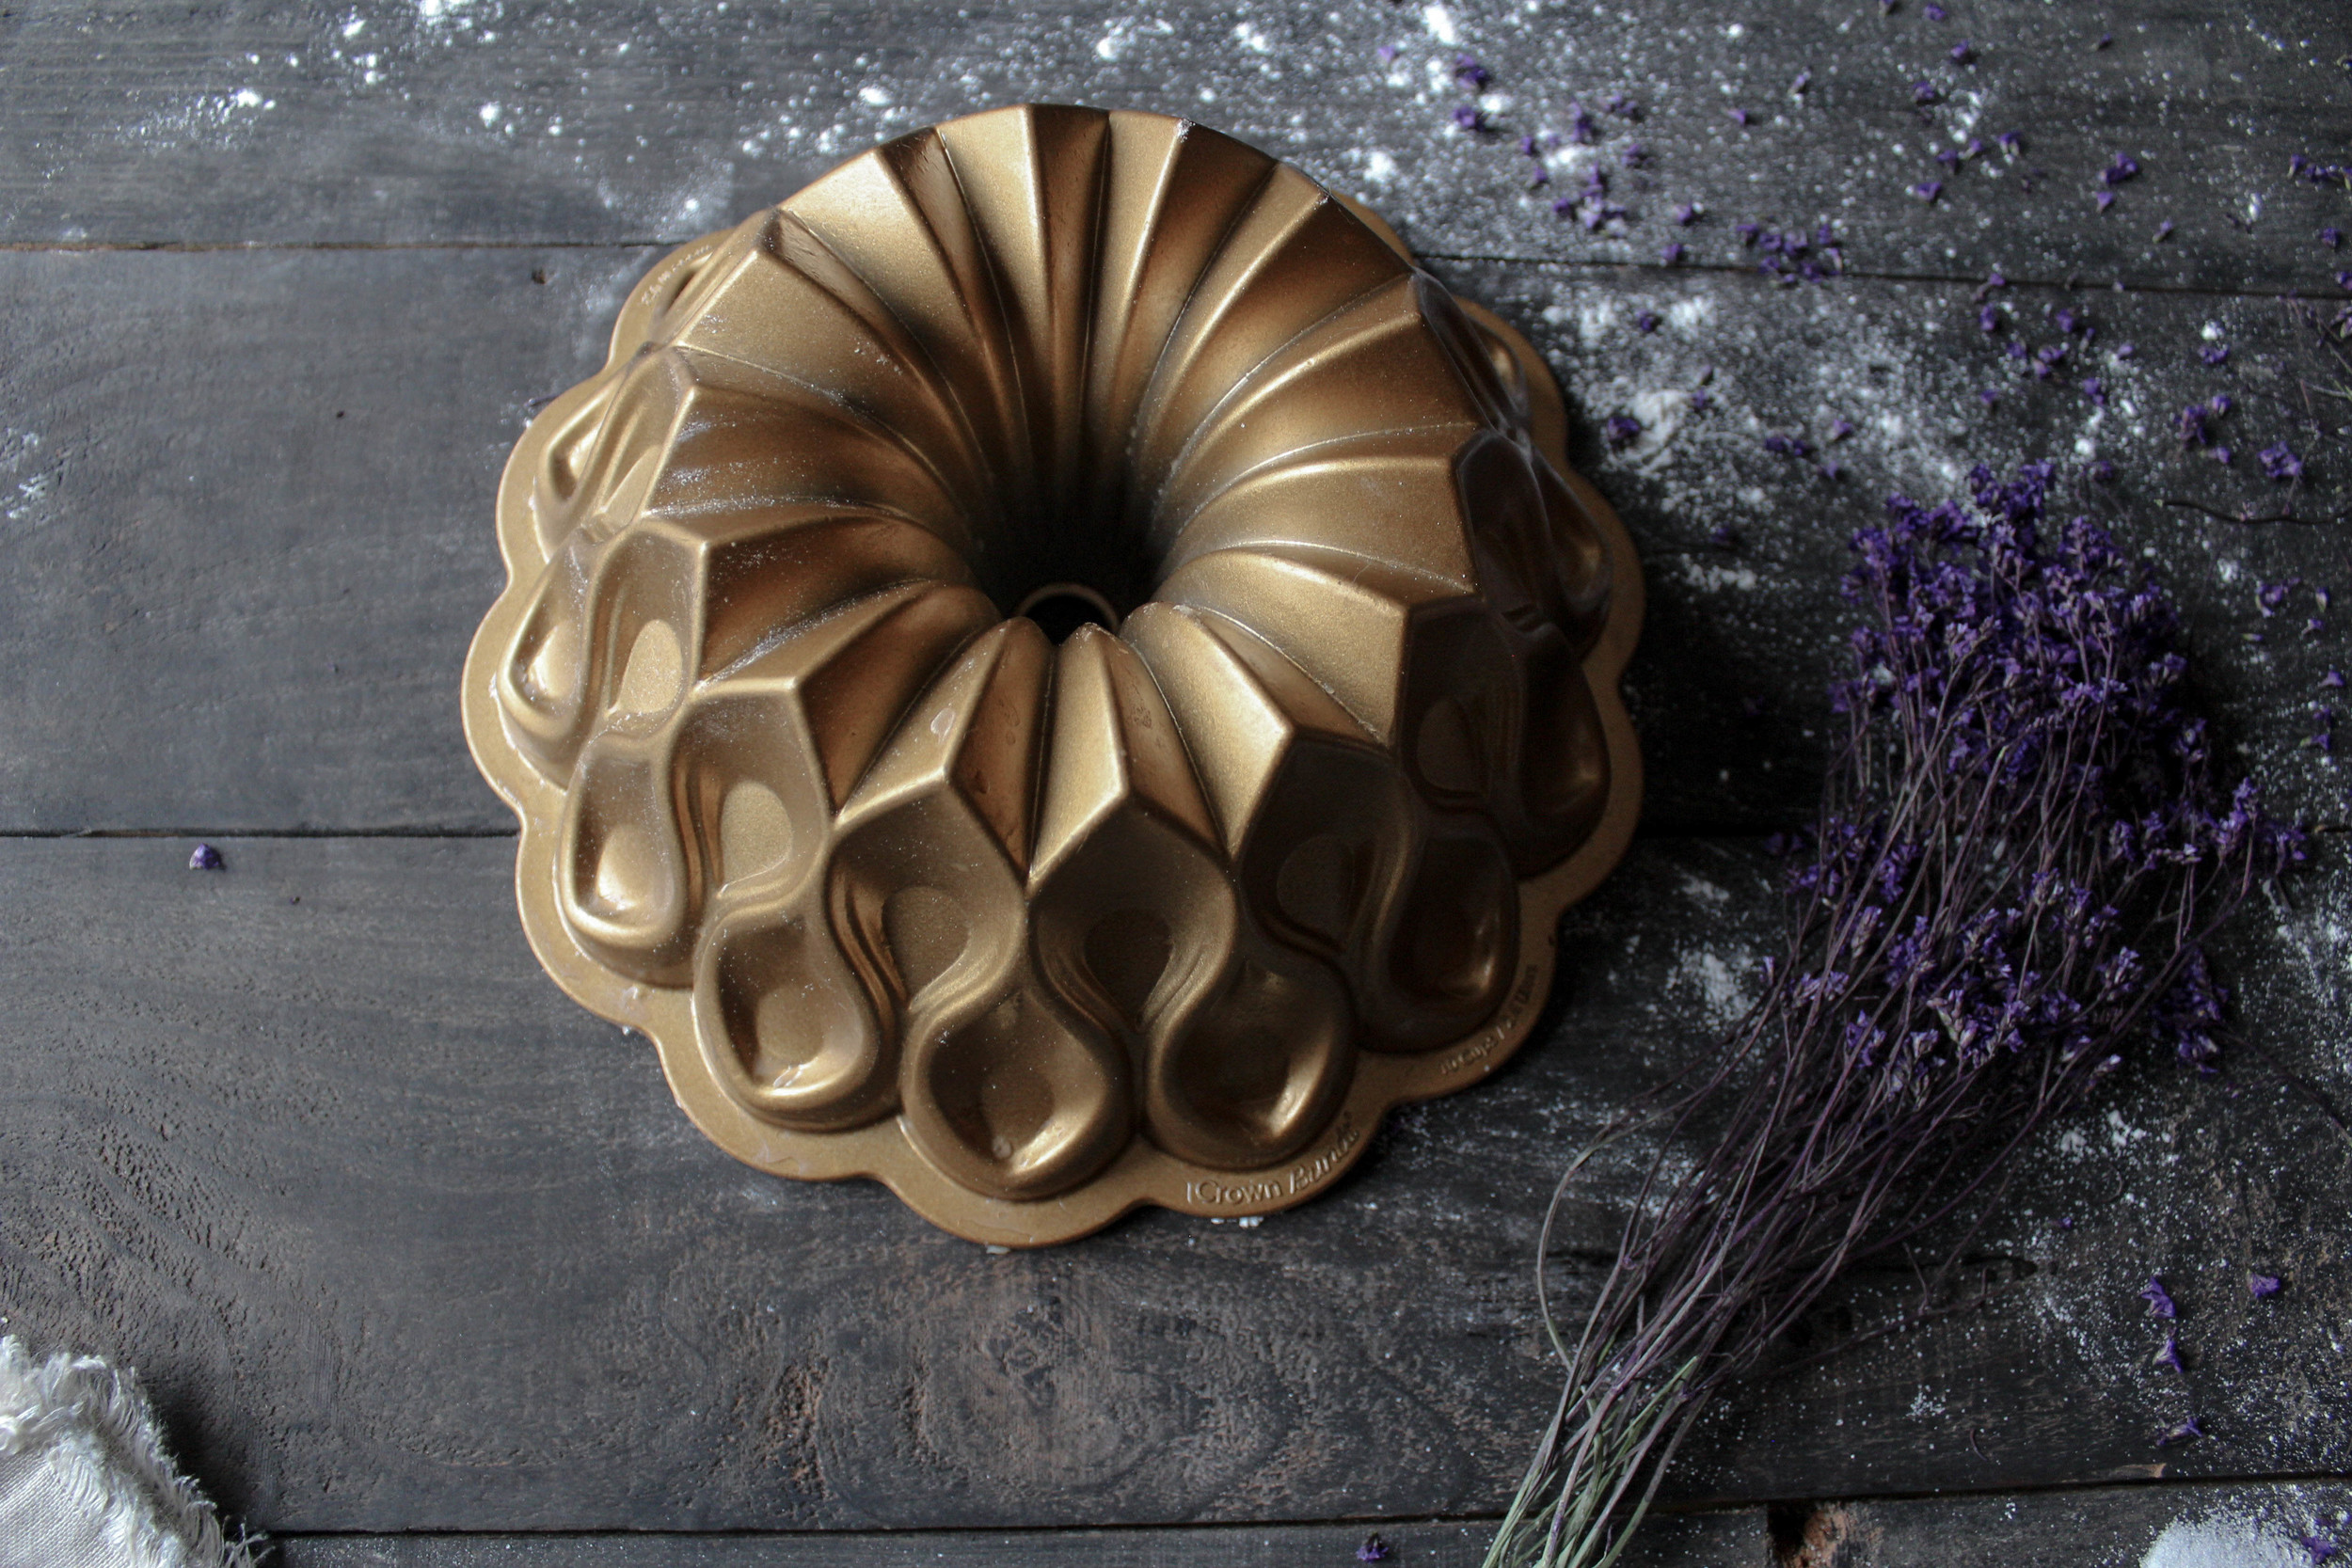 Nordic Ware's 70th Anniversary Crown Bundt Pan